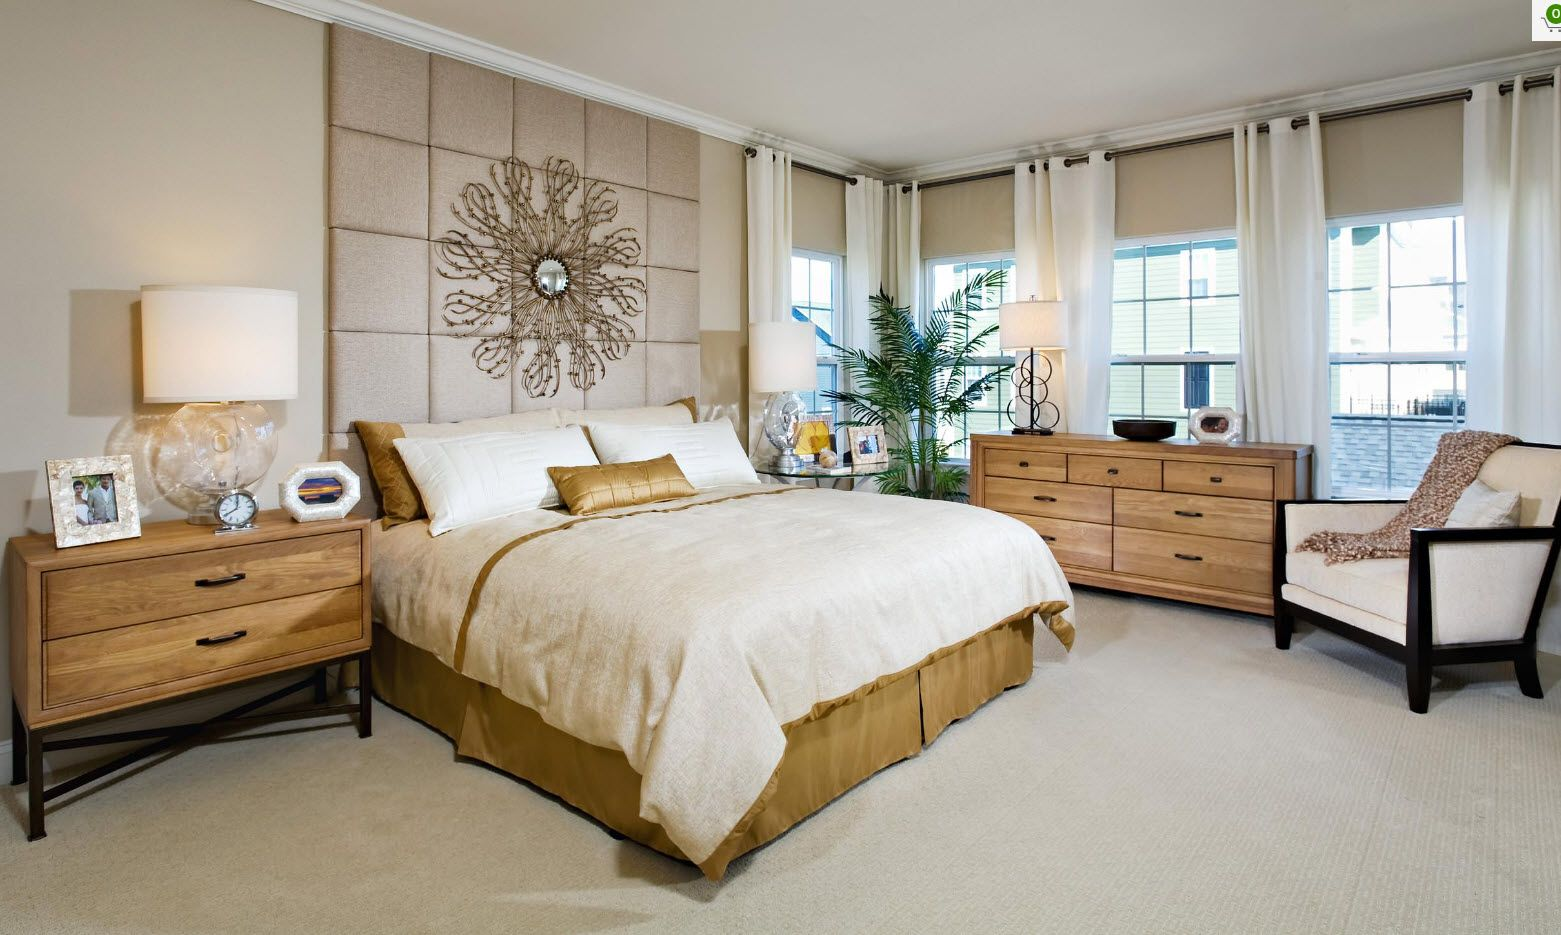 Modern classic with grommet top draperies and expression at the headboard